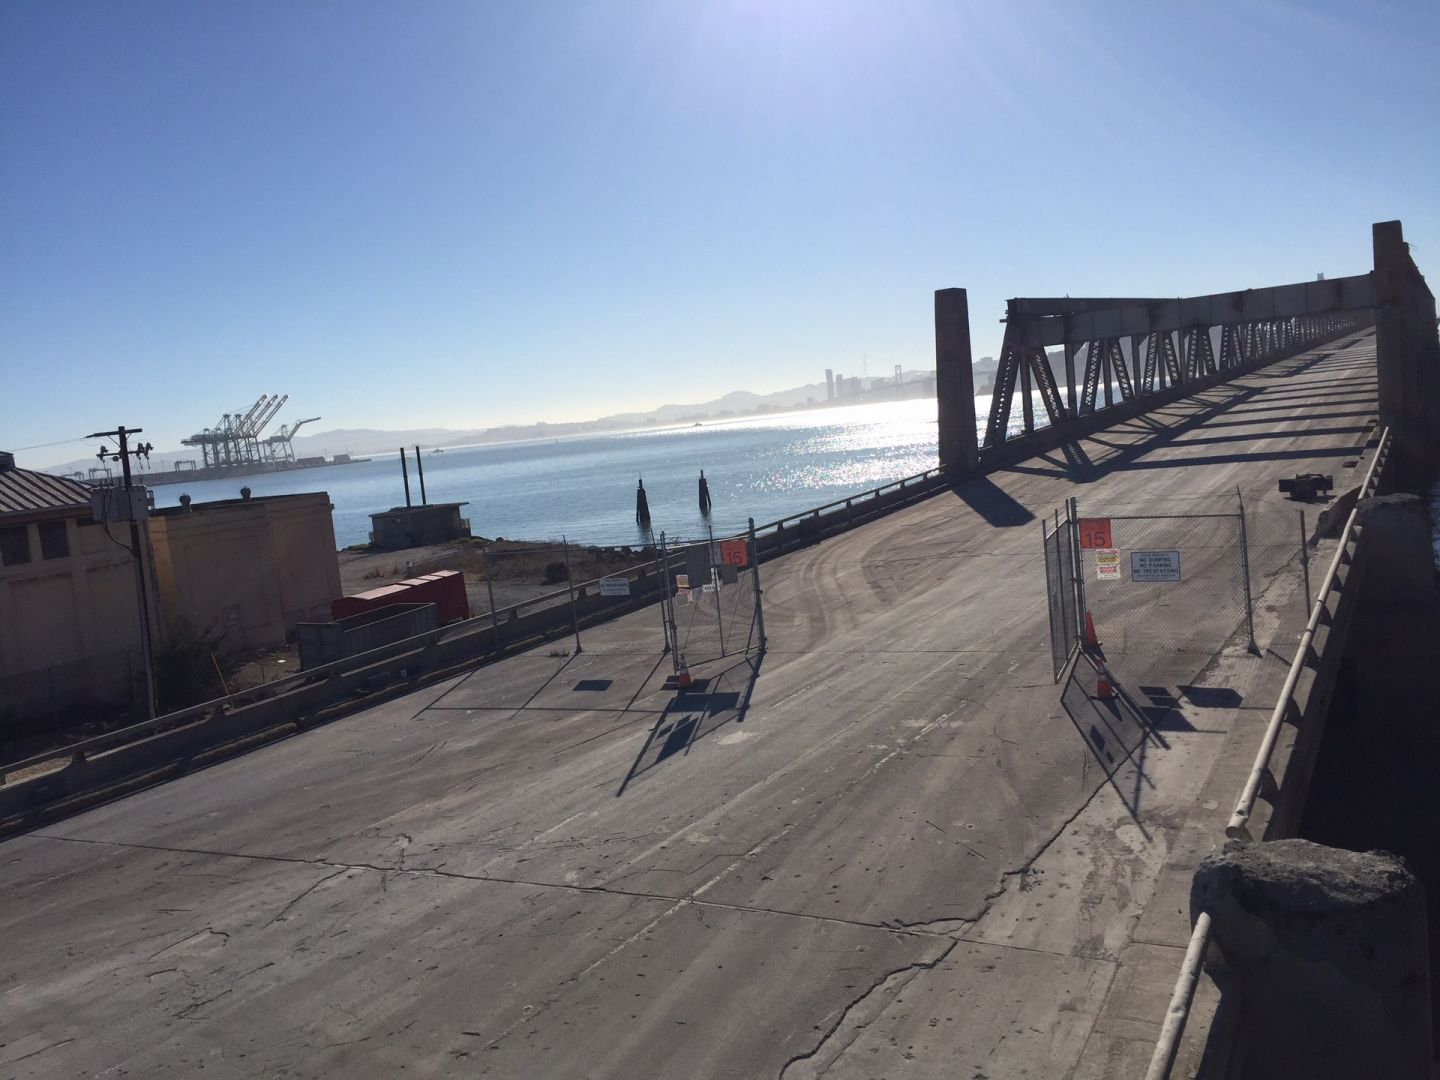 This road is used by work crews traveling on and off the old Bay Bridge.